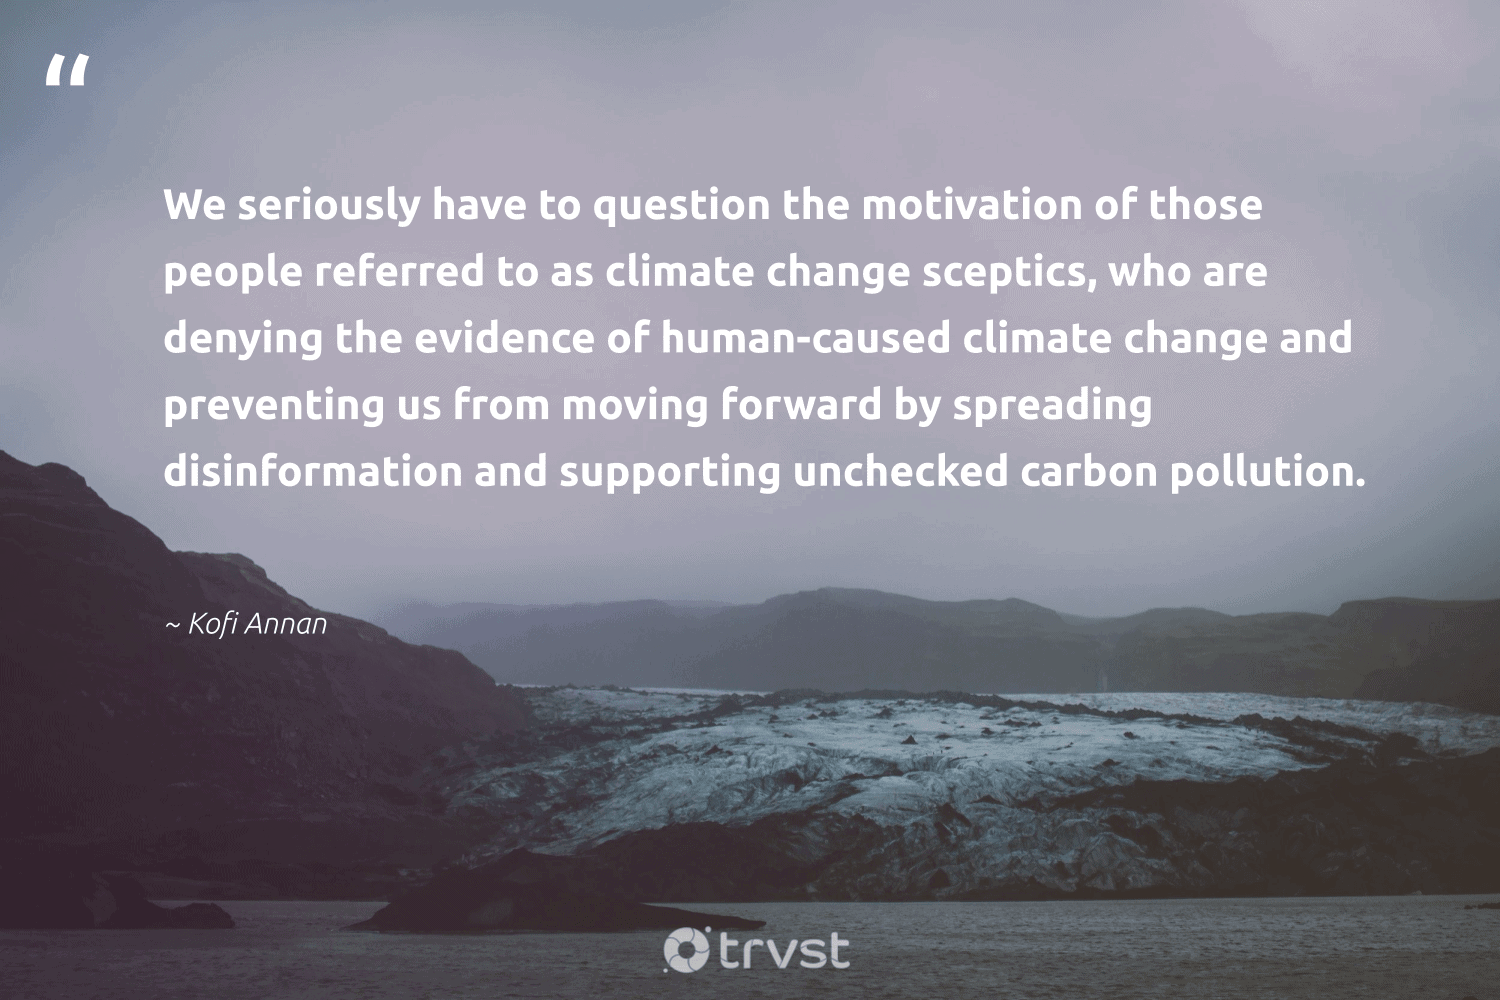 """""""We seriously have to question the motivation of those people referred to as climate change sceptics, who are denying the evidence of human-caused climate change and preventing us from moving forward by spreading disinformation and supporting unchecked carbon pollution.""""  - Kofi Annan #trvst #quotes #climatechange #carbon #pollution #climate #motivation #actonclimate #pollute #climatechangeisreal #climateaction #bethechange"""